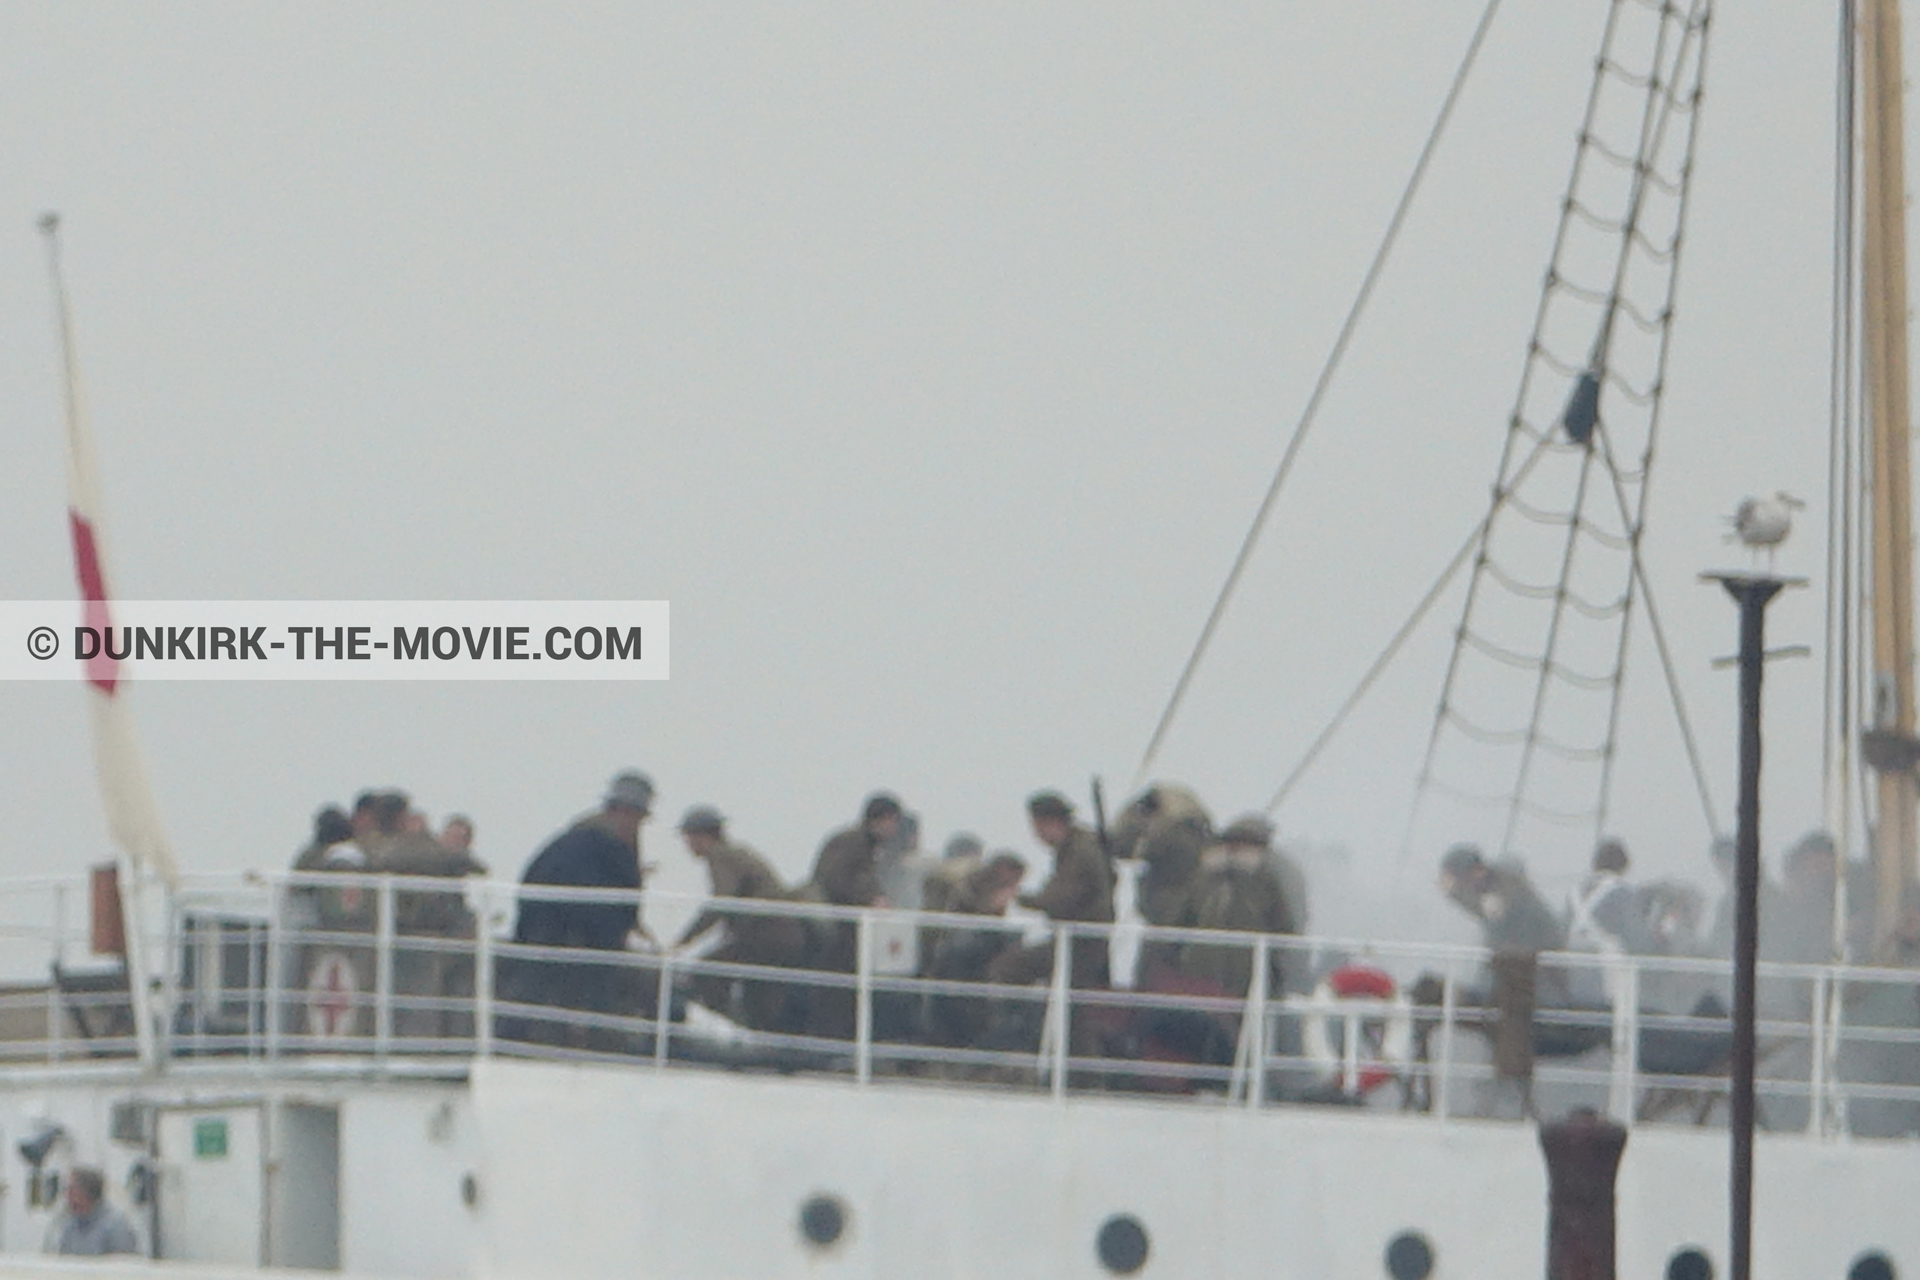 Picture with grey sky, supernumeraries, white smoke, EST pier, M/S Rogaland,  from behind the scene of the Dunkirk movie by Nolan